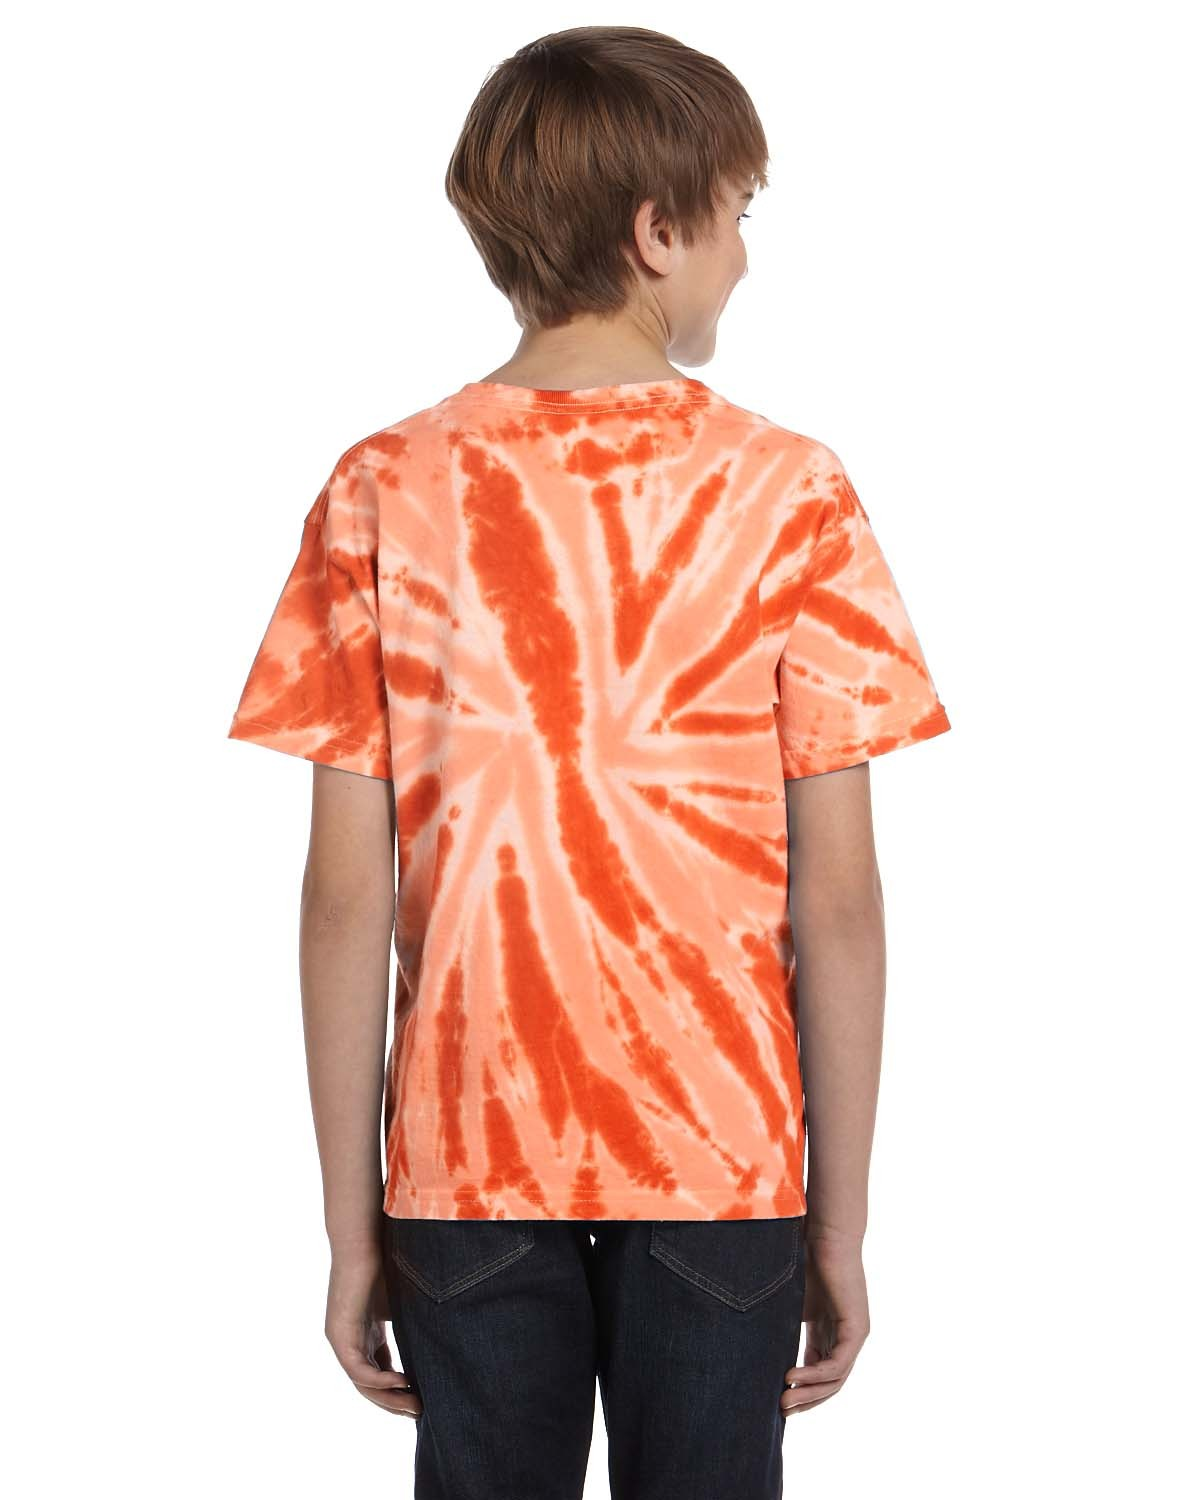 CD110Y Tie-Dye Drop Ship TWIST ORANGE